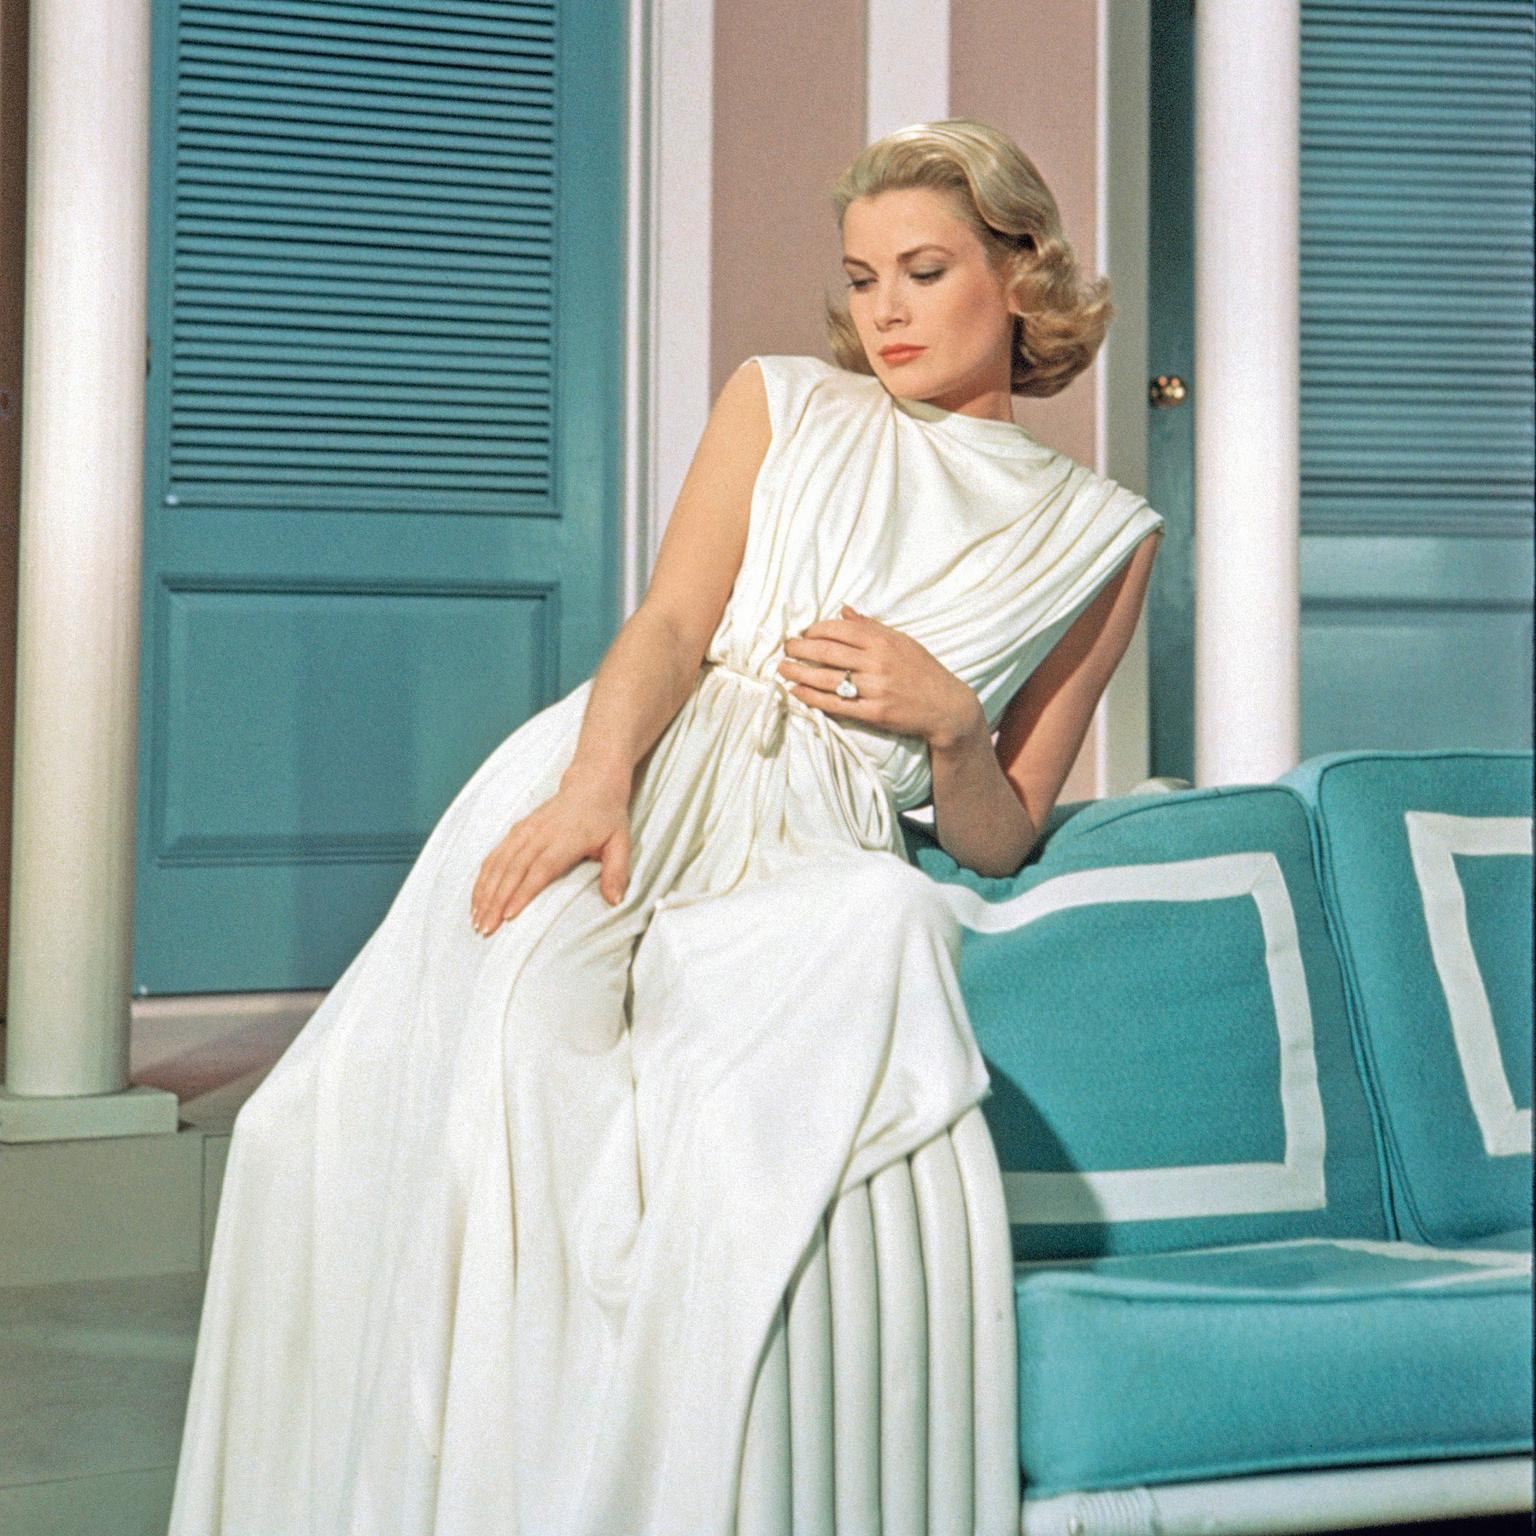 Cartier emerald-cut diamond engagement ring worn by Grace Kelly